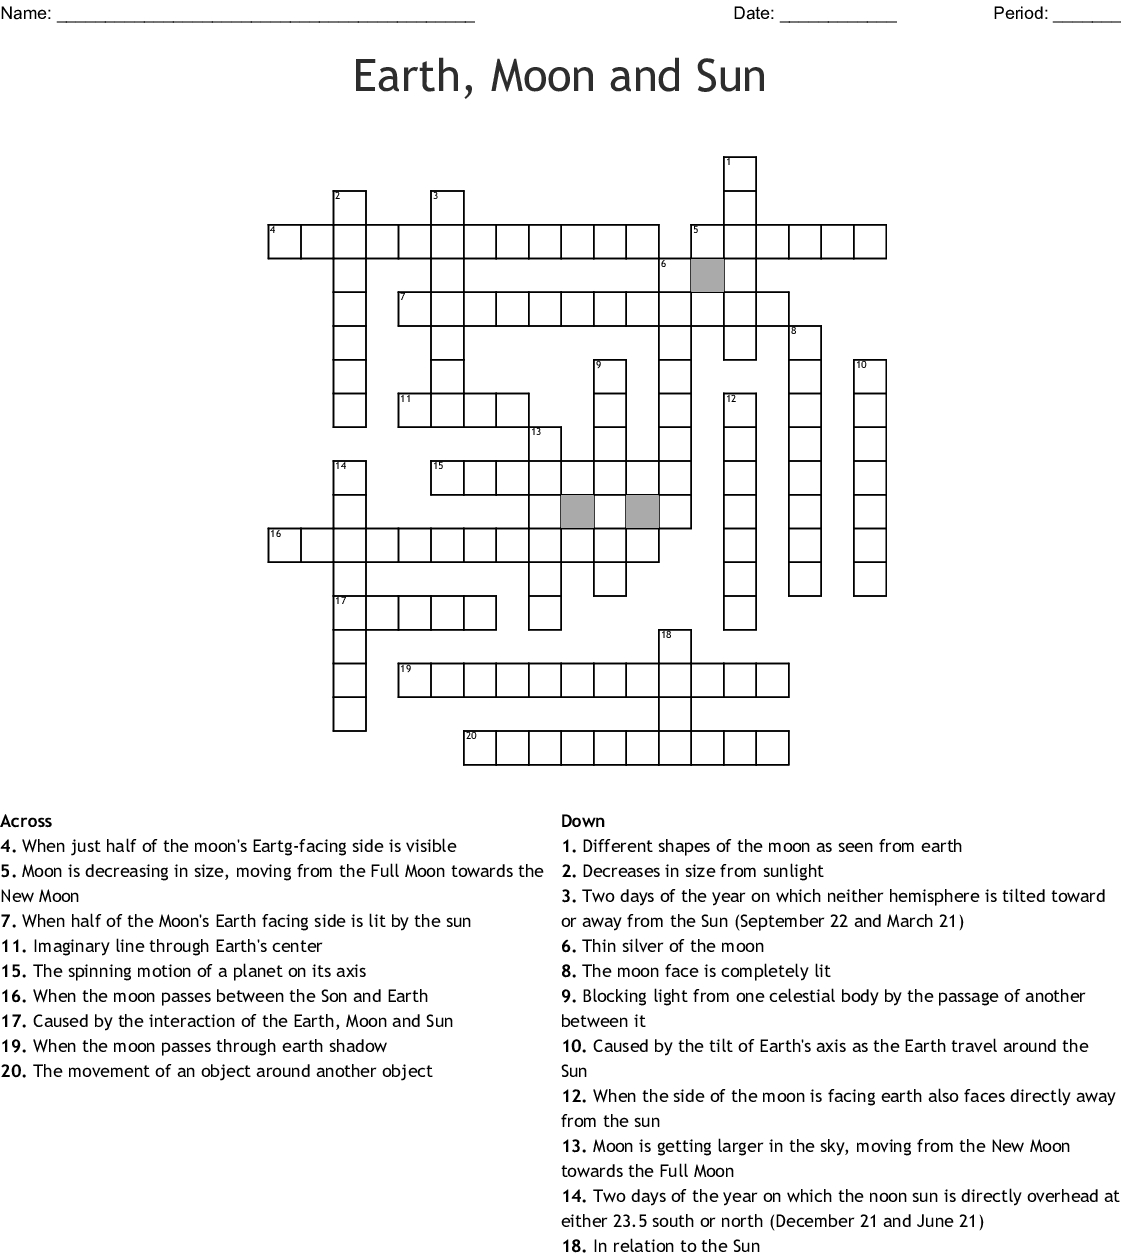 Earth, Moon And Sun Crossword - Wordmint - Printable Crosswords The Sun